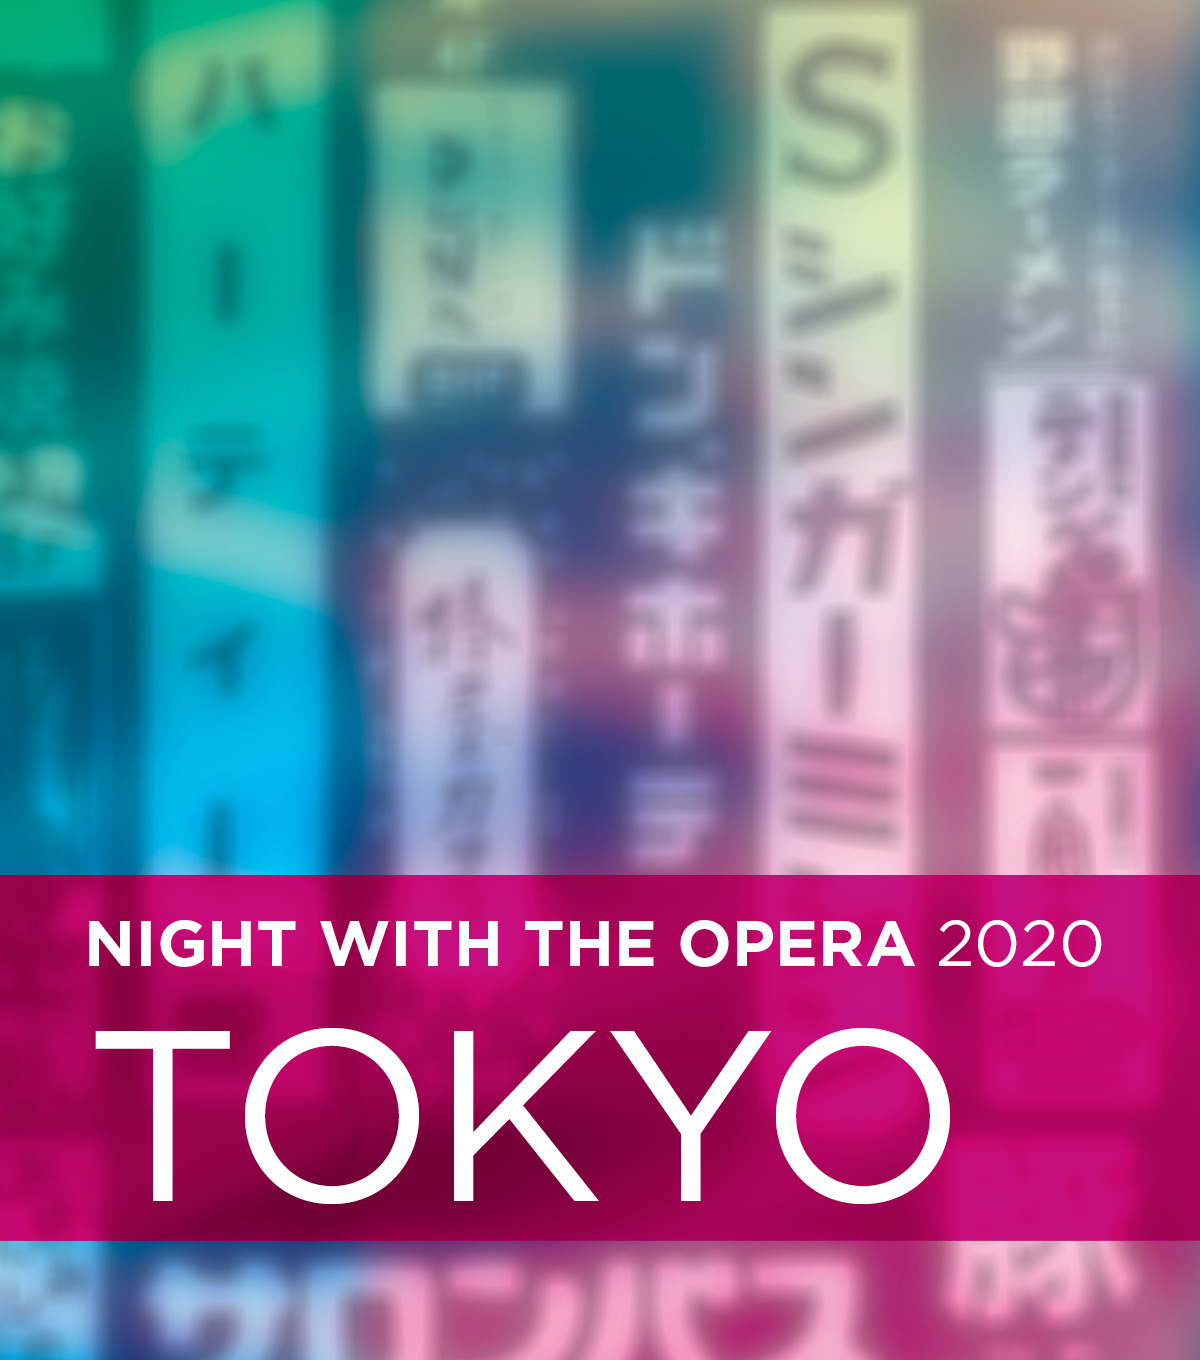 Night with the Opera 2020: Tokyo